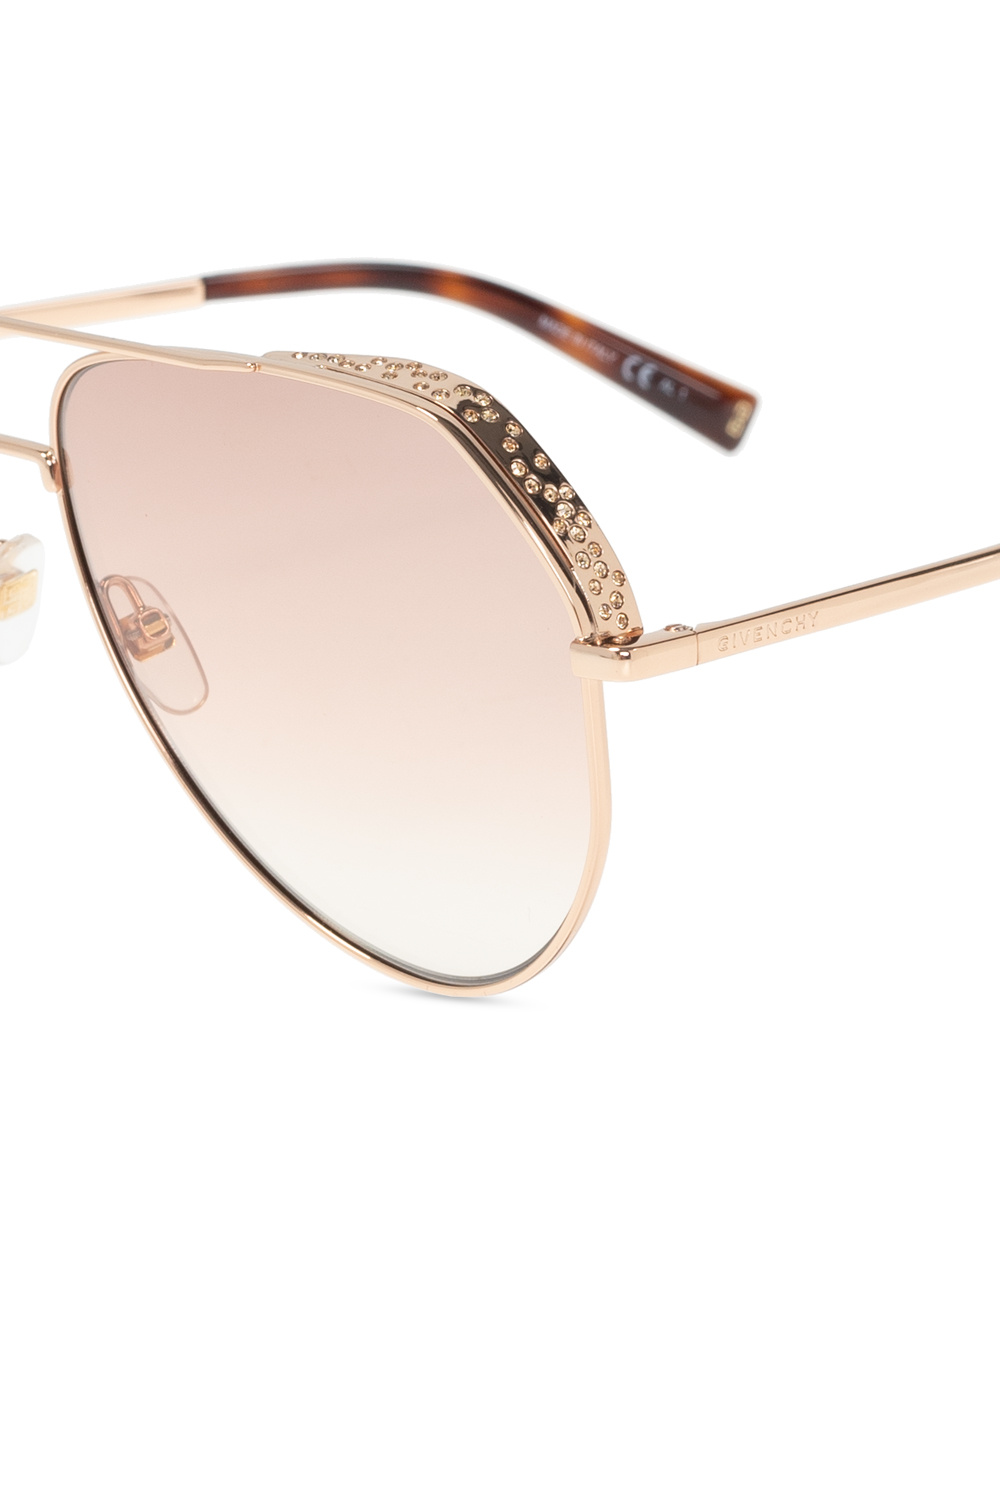 Givenchy Crystal-encrusted sunglasses